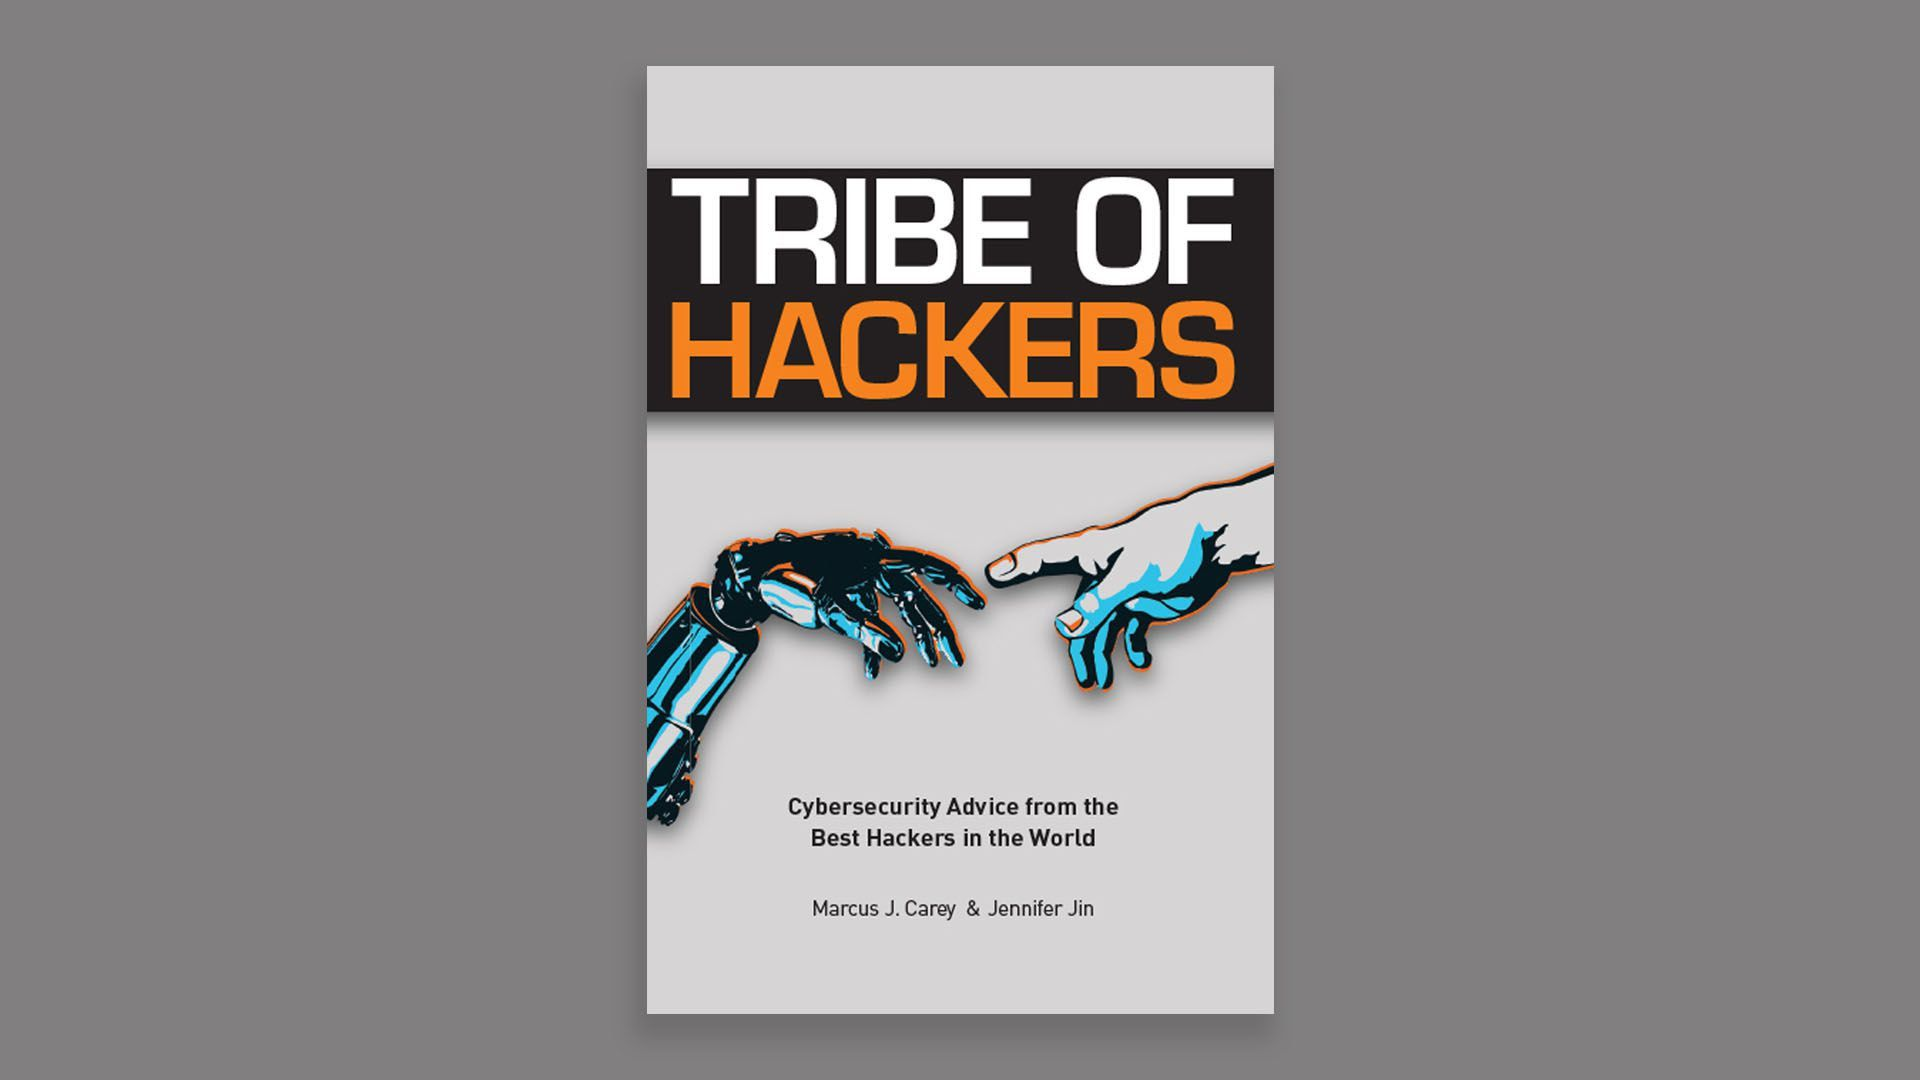 book cover of Tribe of Hackers with human hand reaching out to robot hand, Michelangelo-style